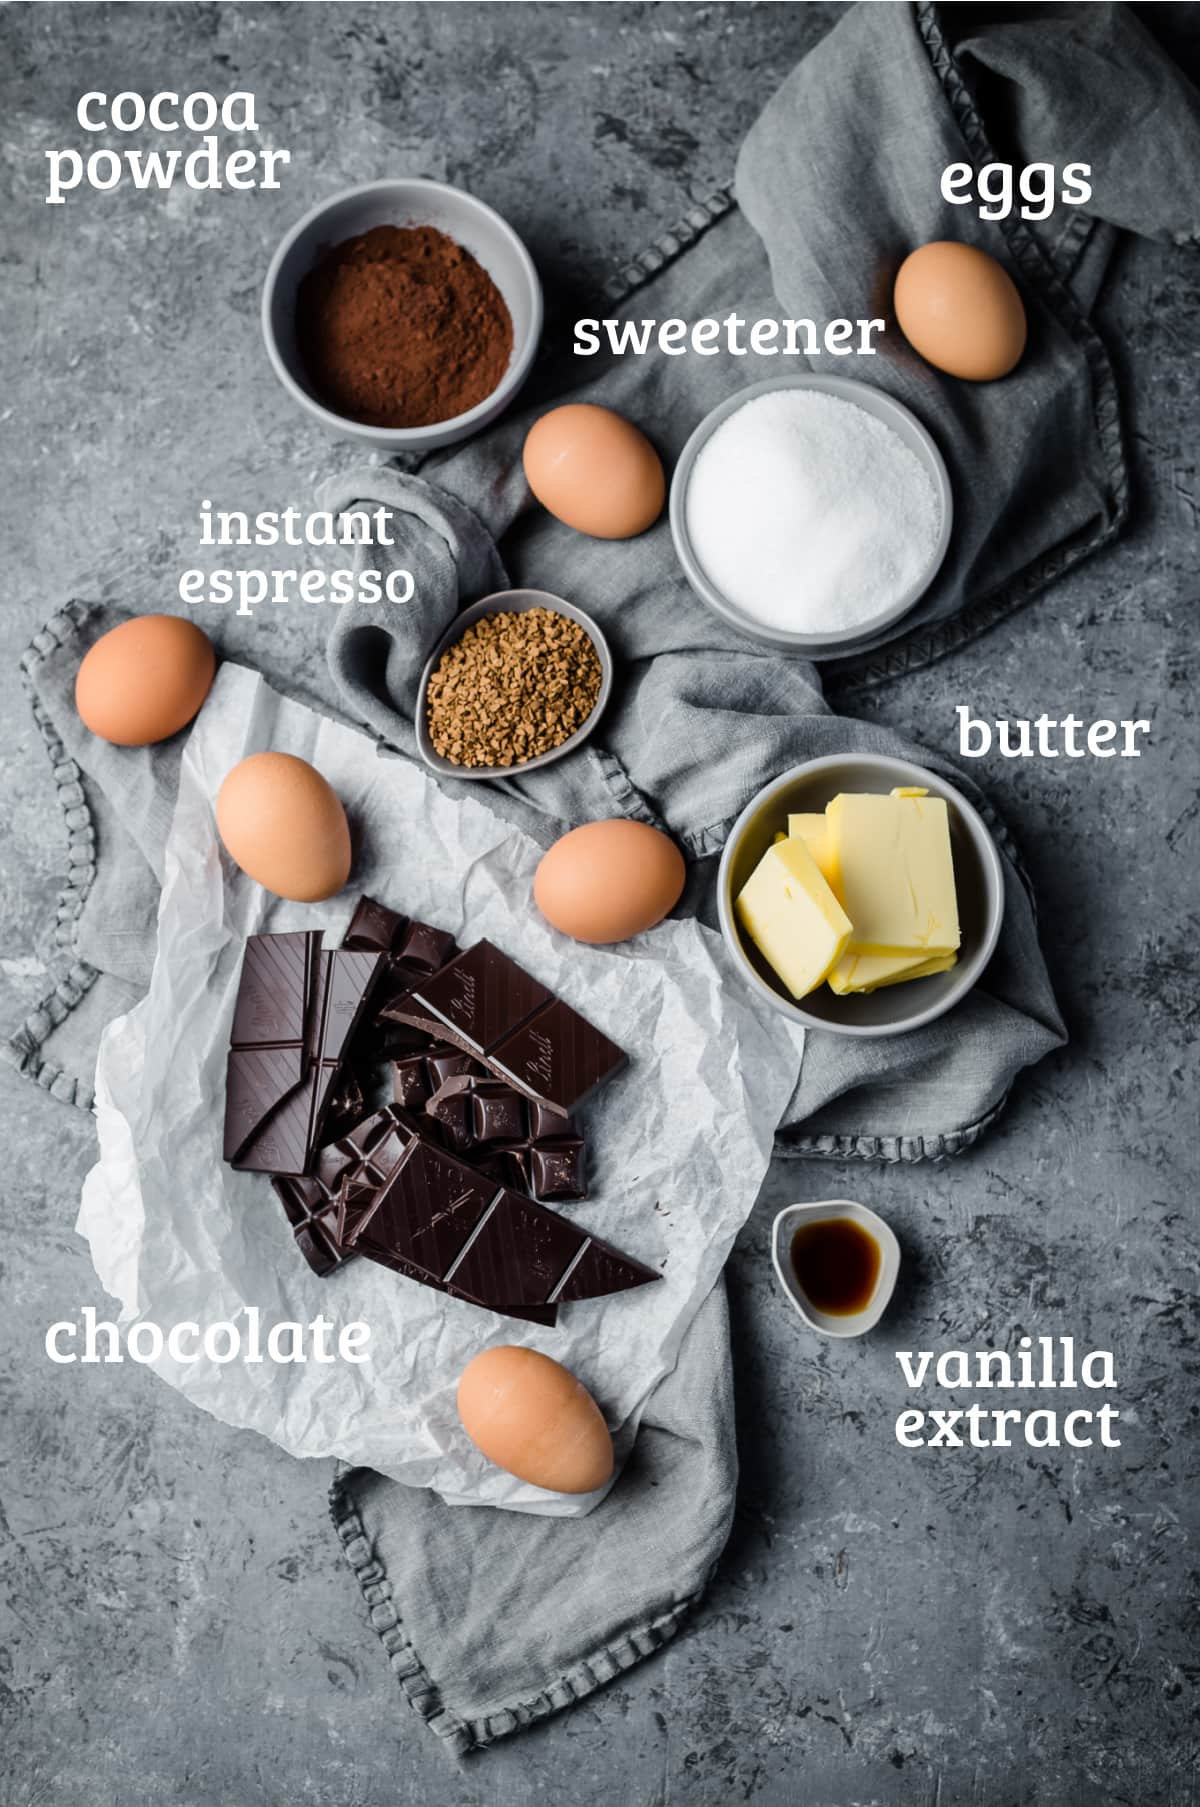 ingredients for a keto flourless chocolate cake - cocoa, eggs, sweetener, butter, vanilla, and espresso